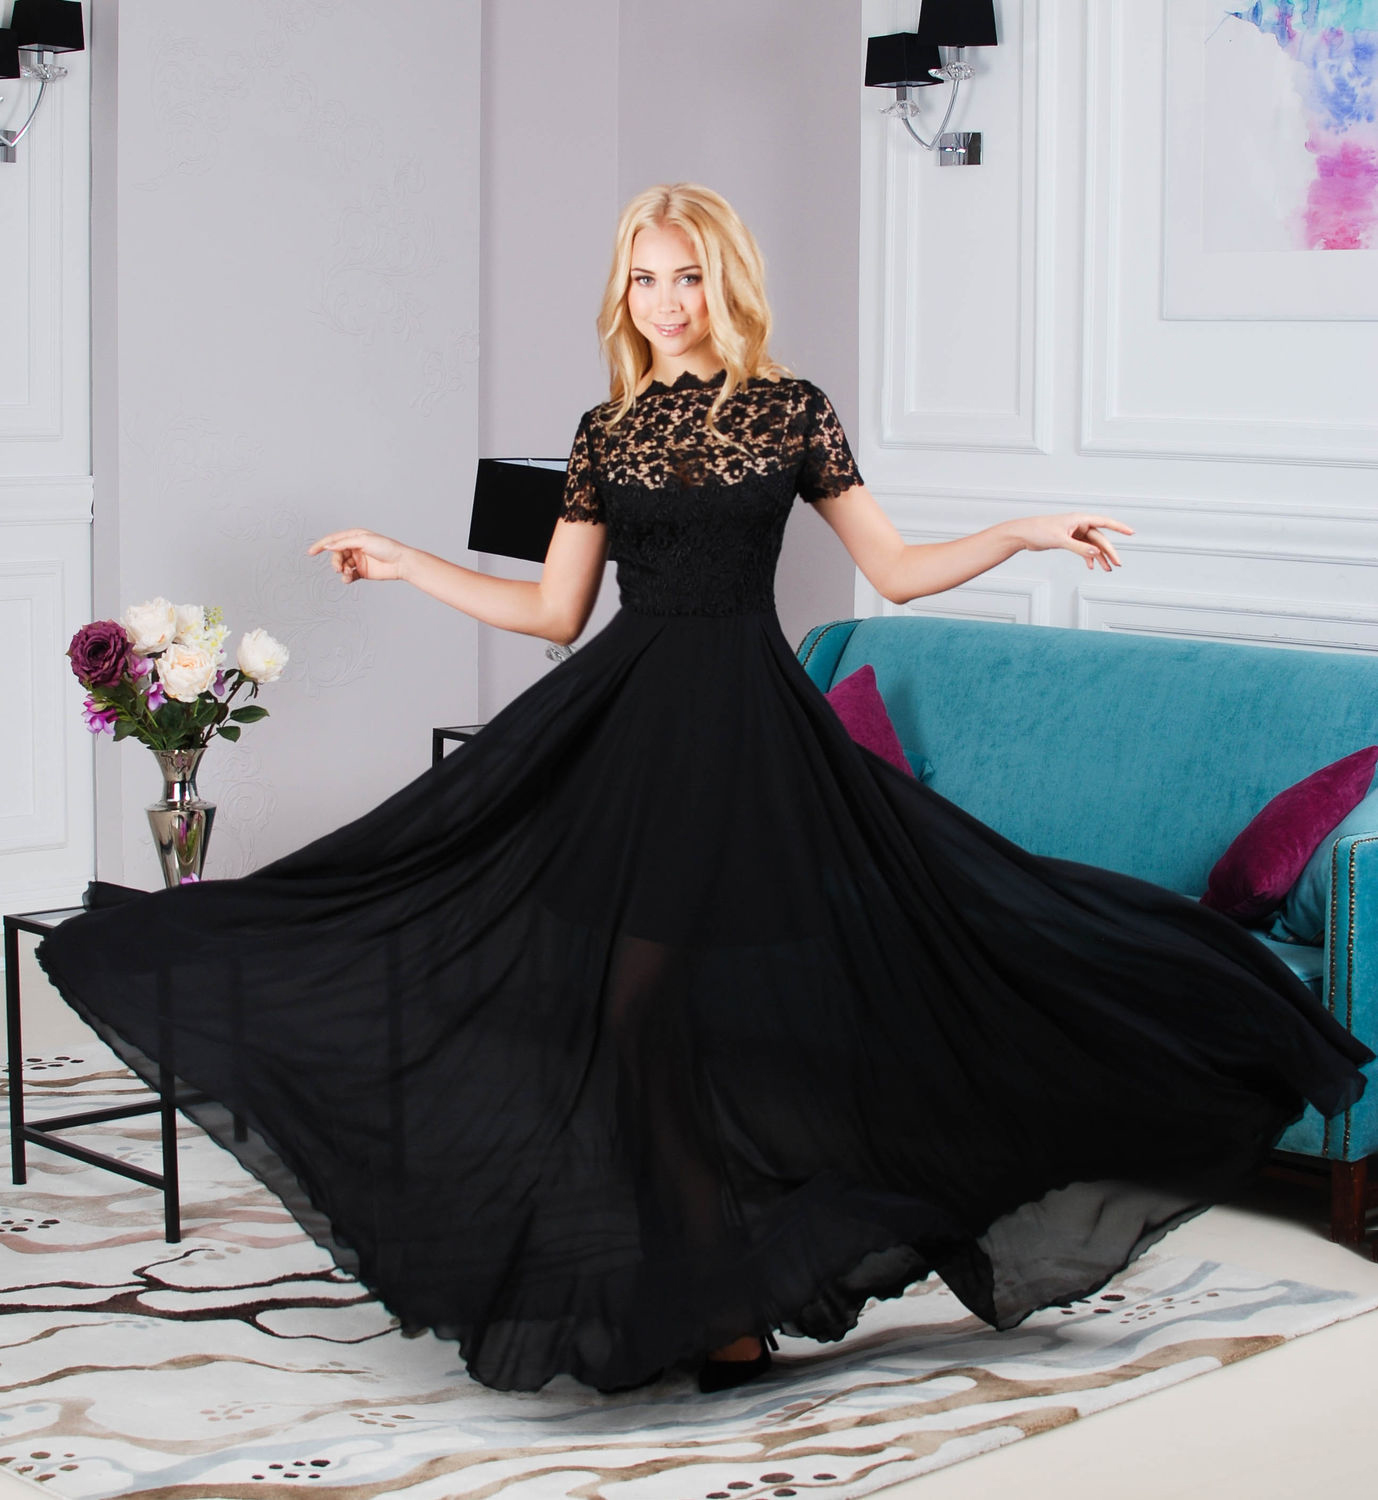 2018 New Sexy Women Black Lace Dress Short Sleeve A-line Sexy Party Dress Plus Size S--4XL Beauty Dance Wear Floor-length